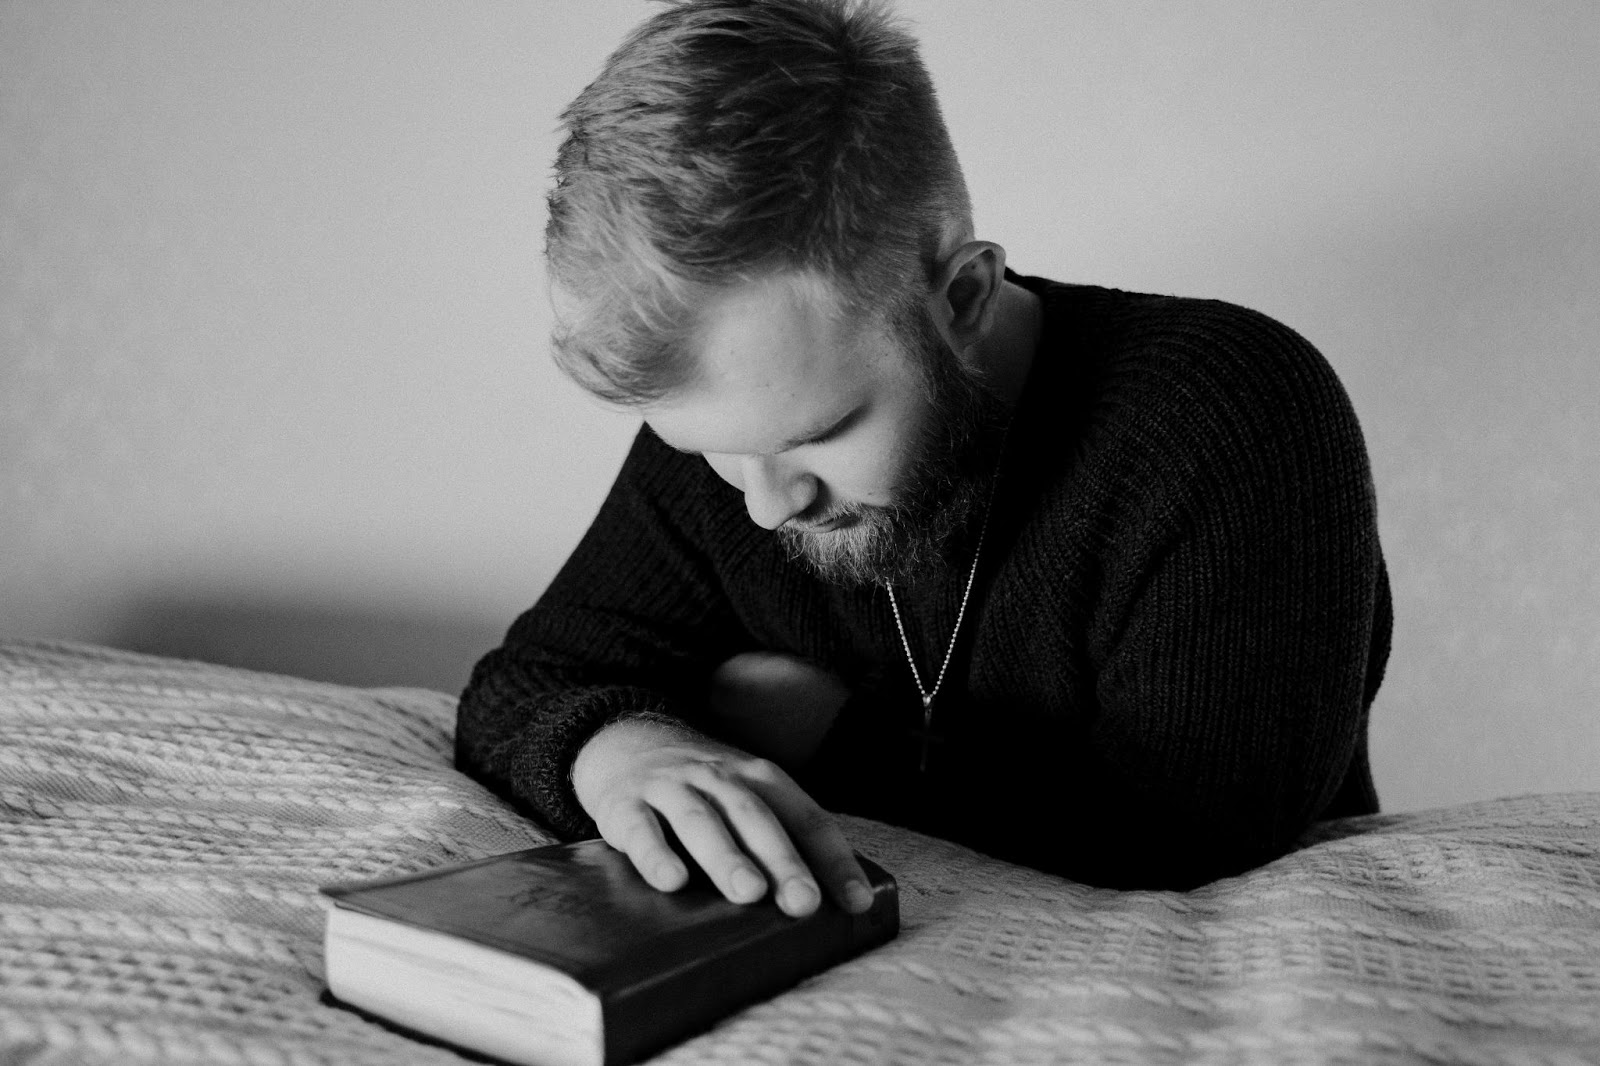 Learn more about the power of prayer and why it works in the lives of believing Christians with pray.com.